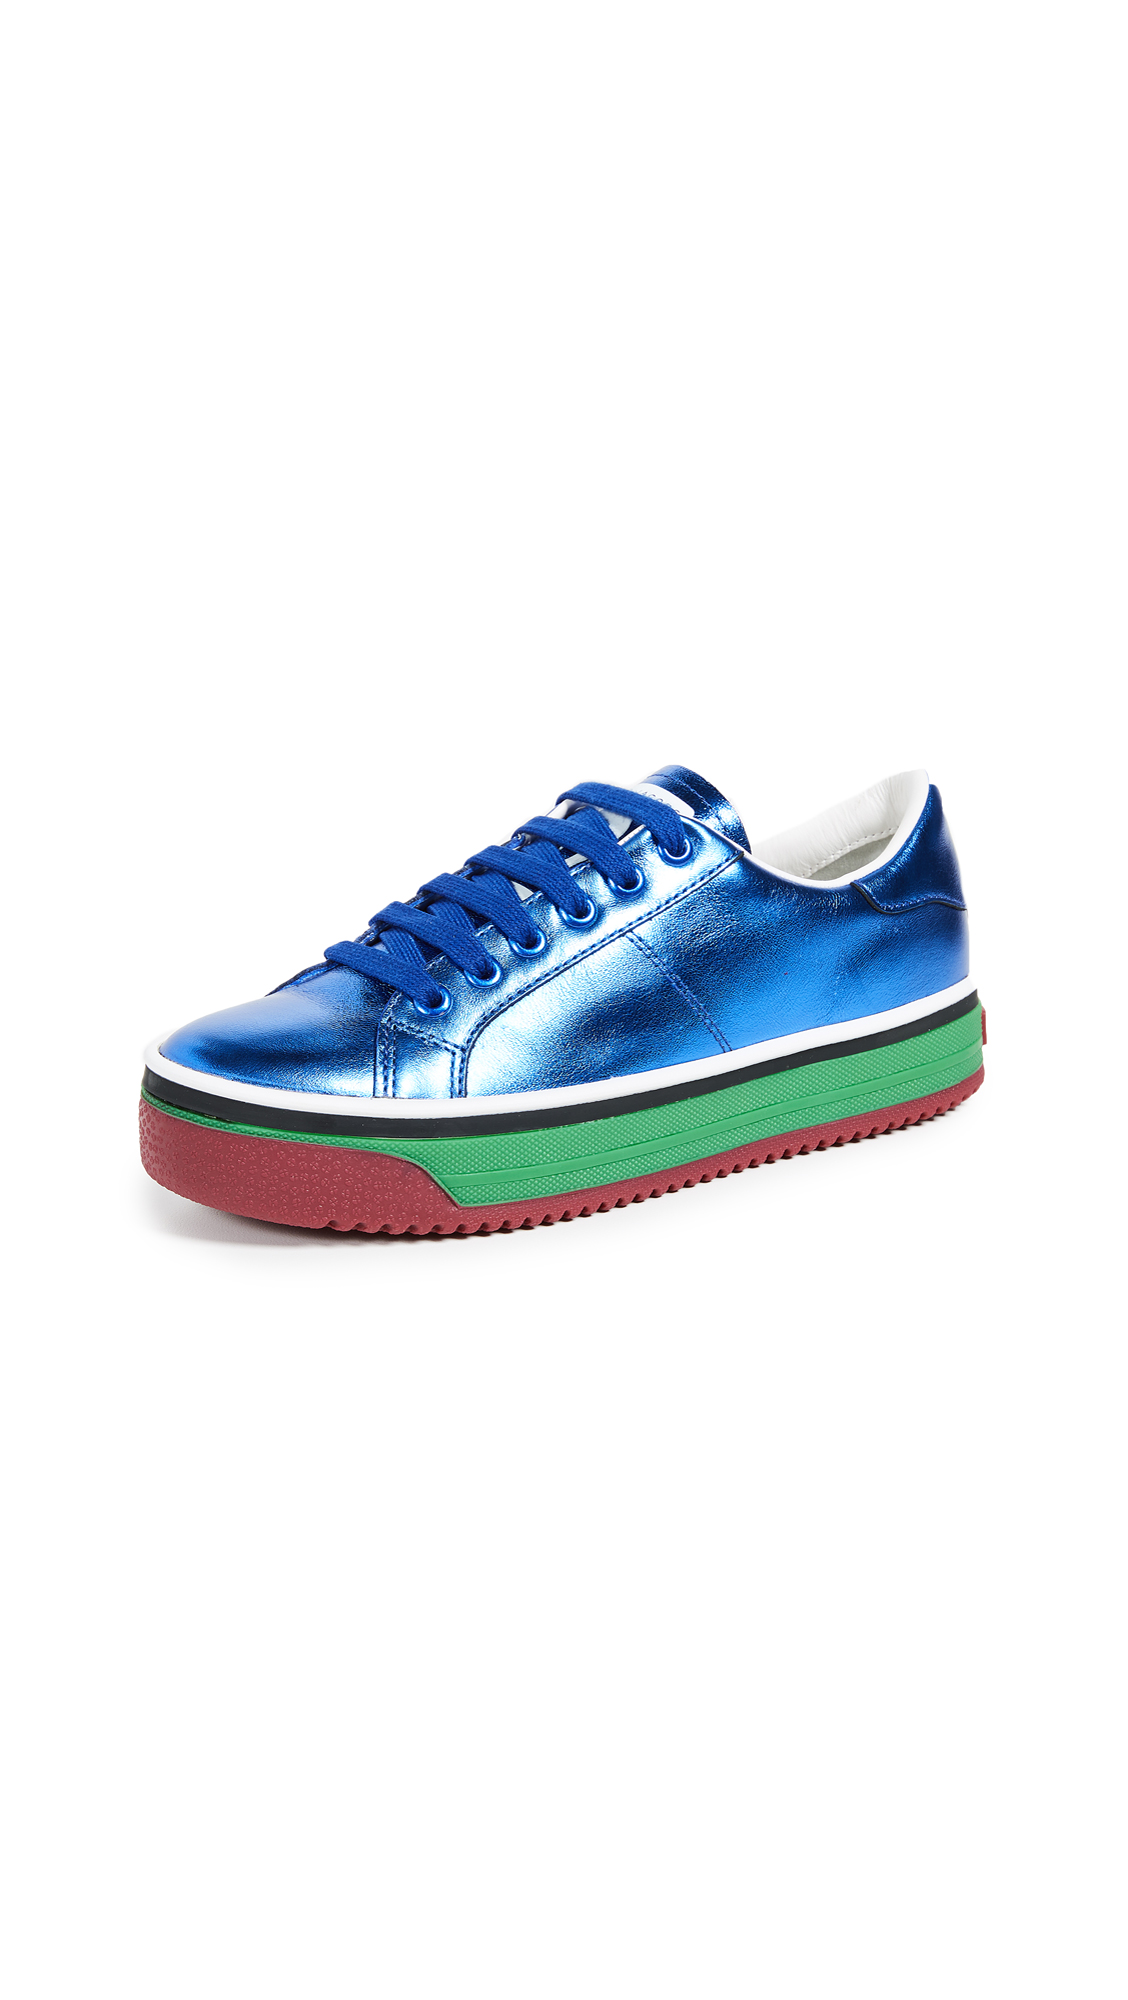 Marc Jacobs Empire Multicolor Sole Sneakers - Blue Multi